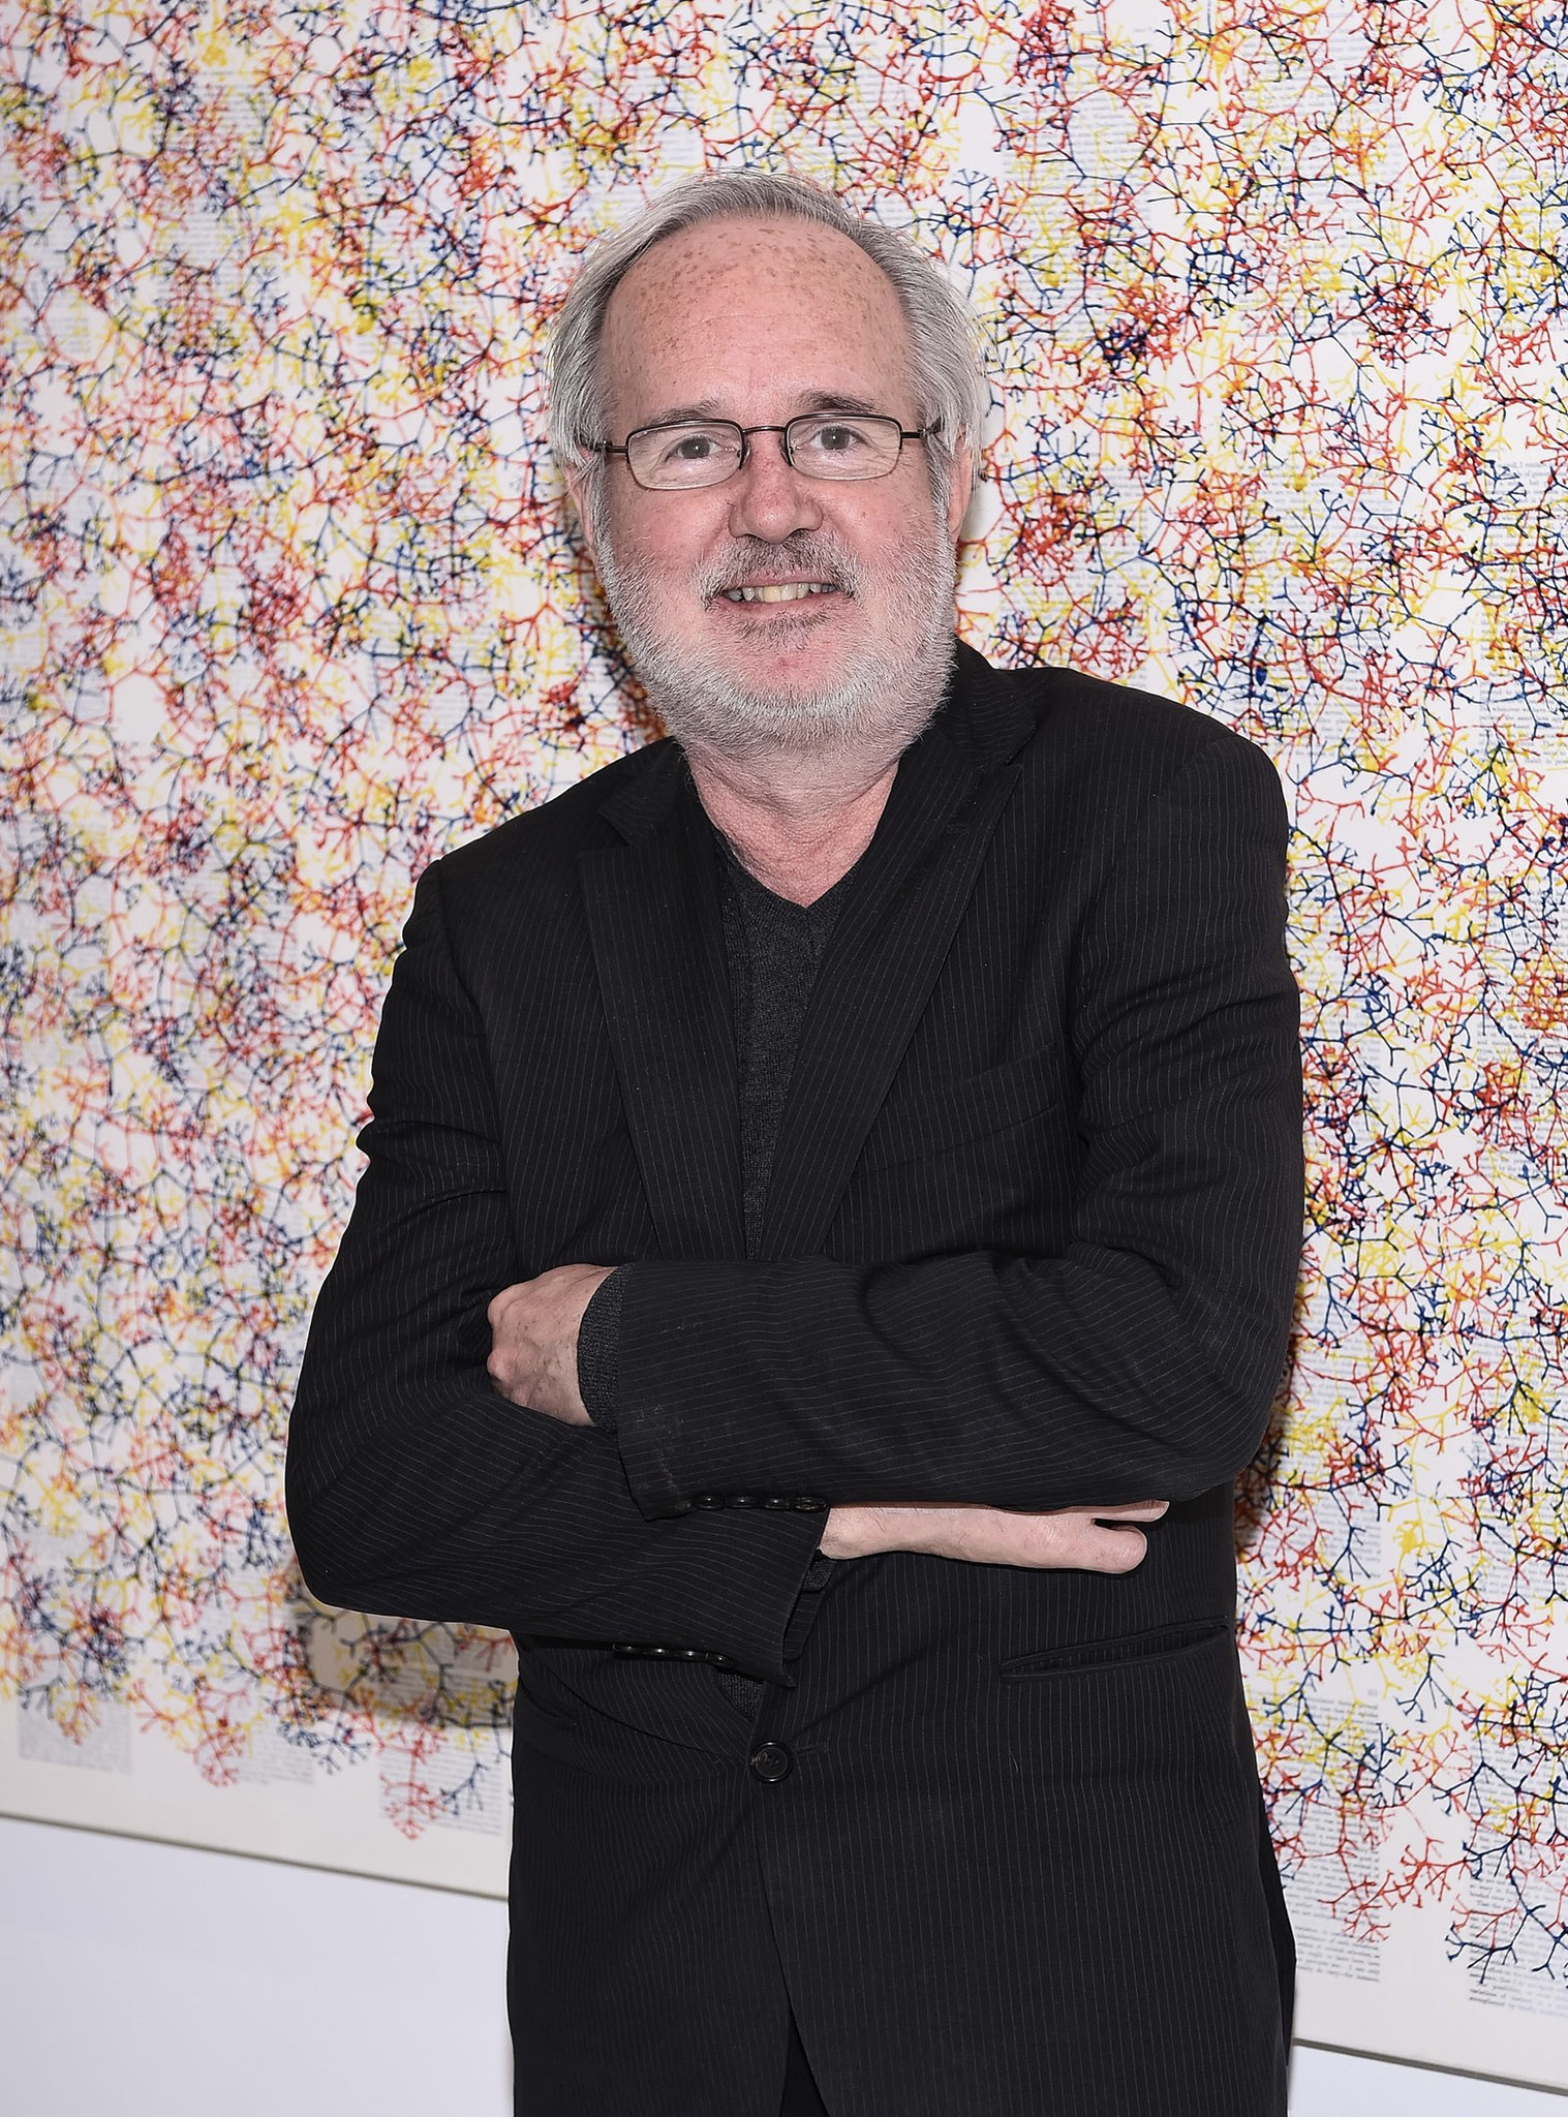 a man leans up against a decorative wall while smiling